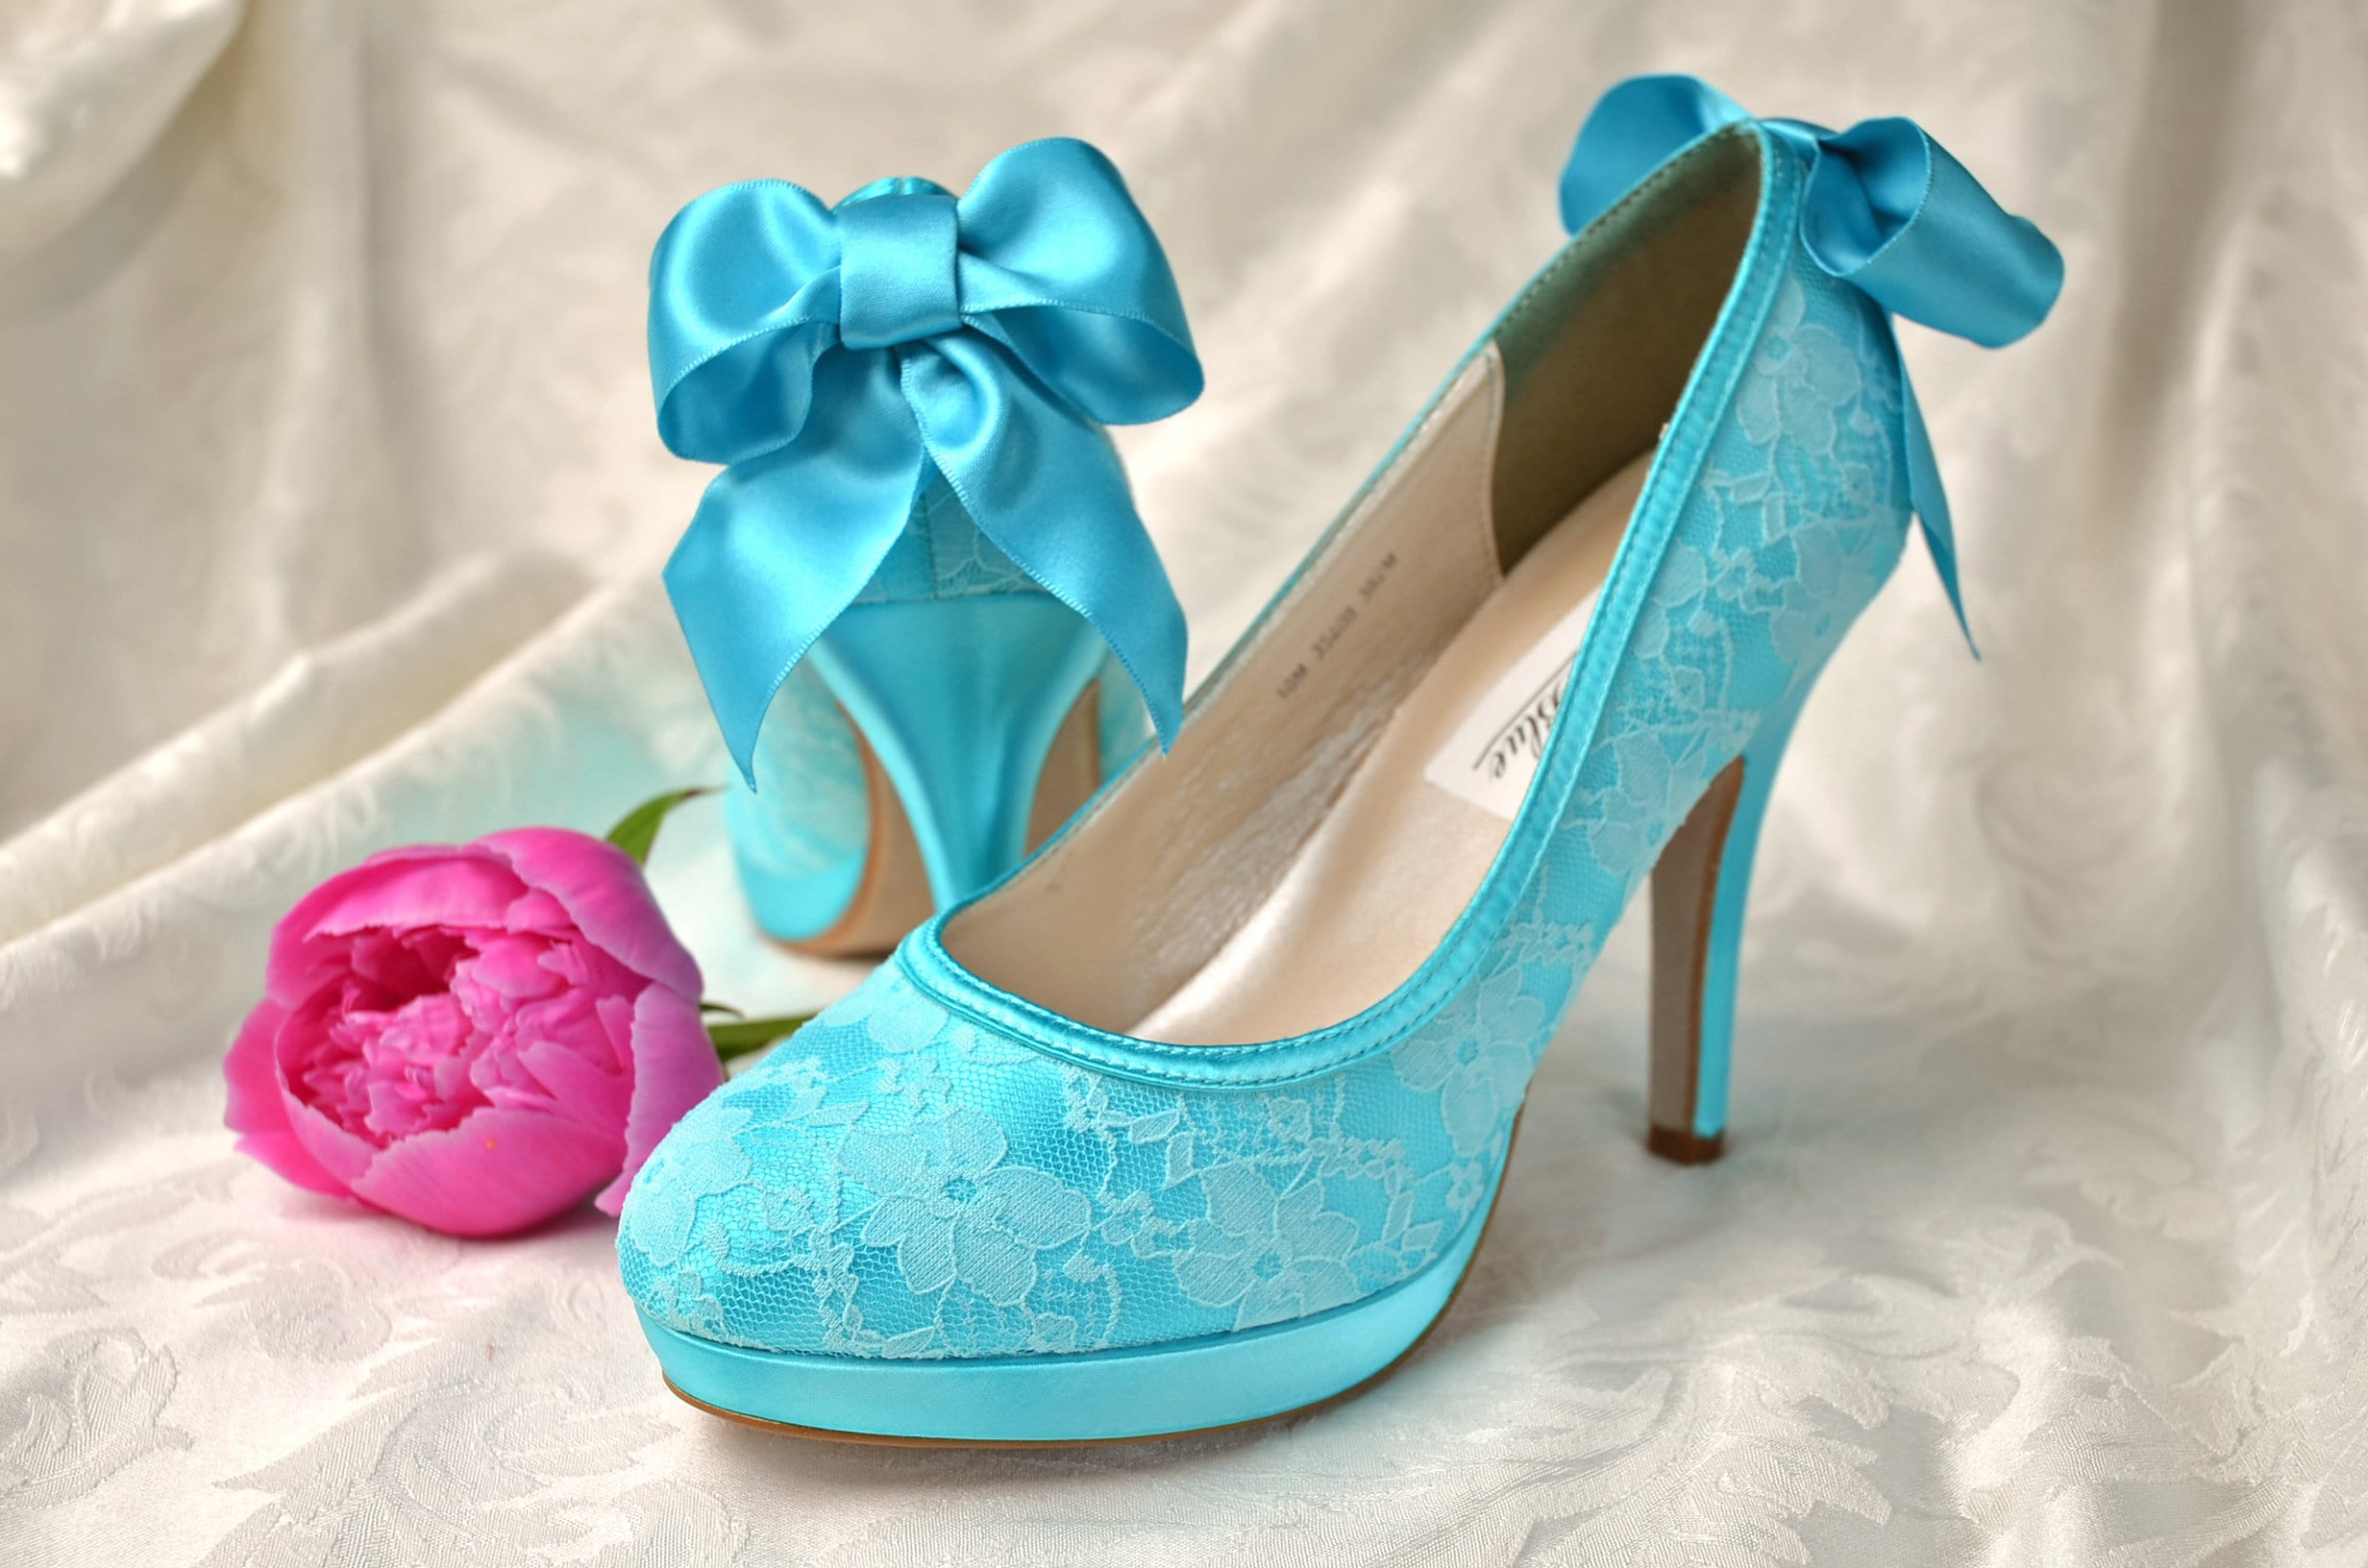 369376f454b Women's Lace Wedding Shoes / FREE Custom Colors / Wedding Shoes With Bows  /Vintage Bridal Shoes- Closed Toe Lace Bridal Shoes, Pink2Blue